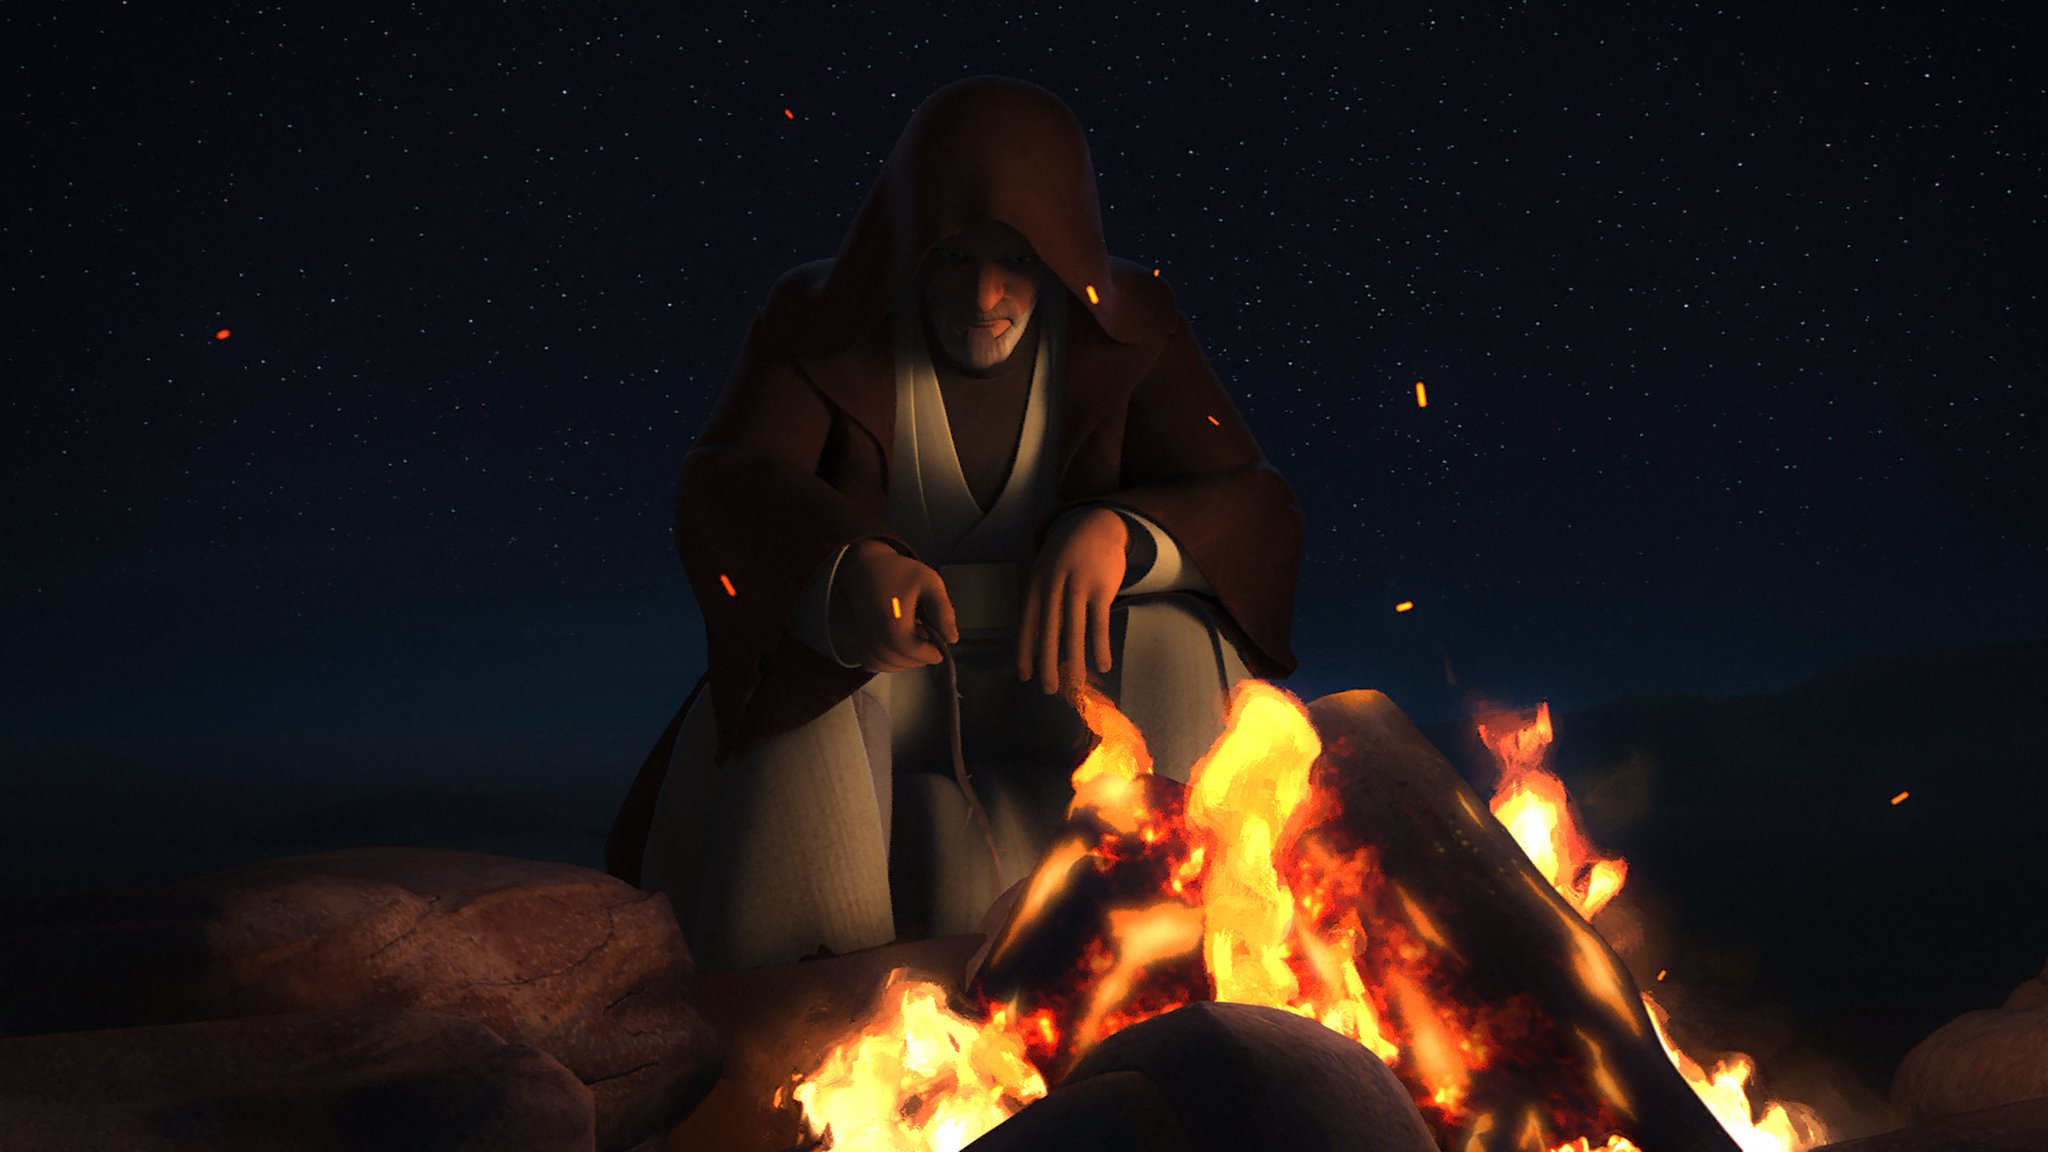 I'm excited/nervous/thrilled for this Saturday's #starwarsrebels! https://t.co/6xHcO2v4N3